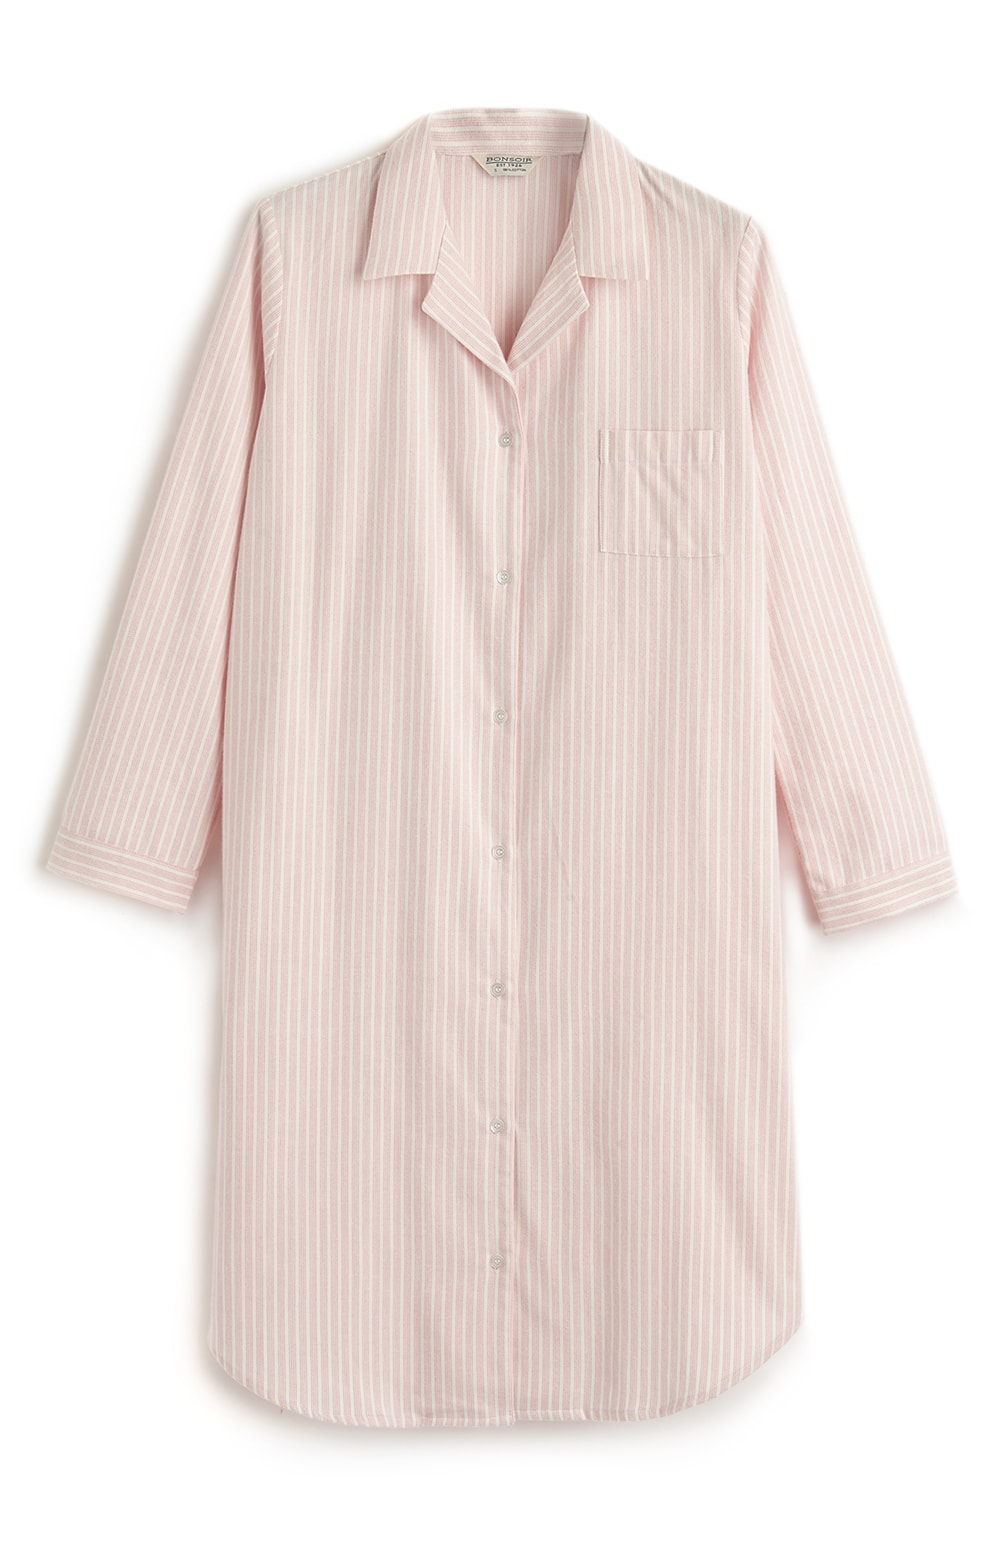 Brushed Pastel Nightshirt (blnf) - Pink Stripe | Bonsoir of London